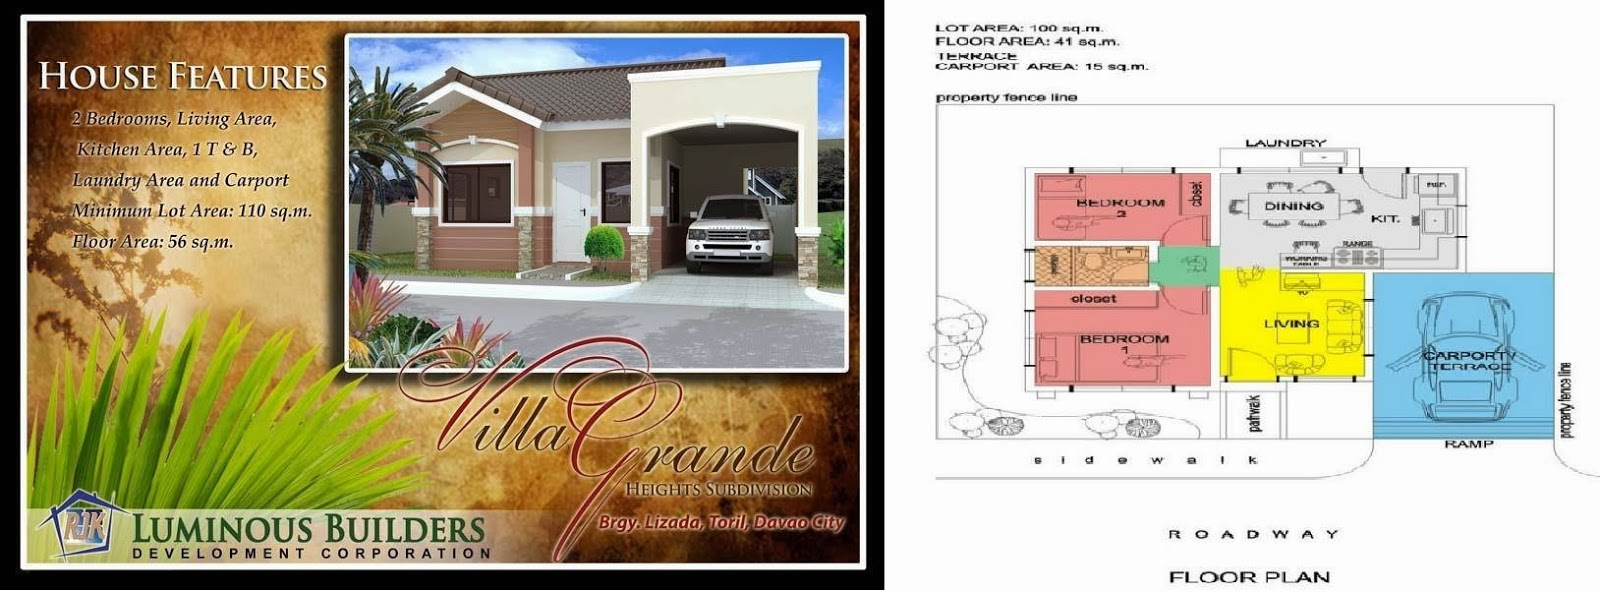 Villa Grande Heights, Toril, Davao City, Lucerne Model